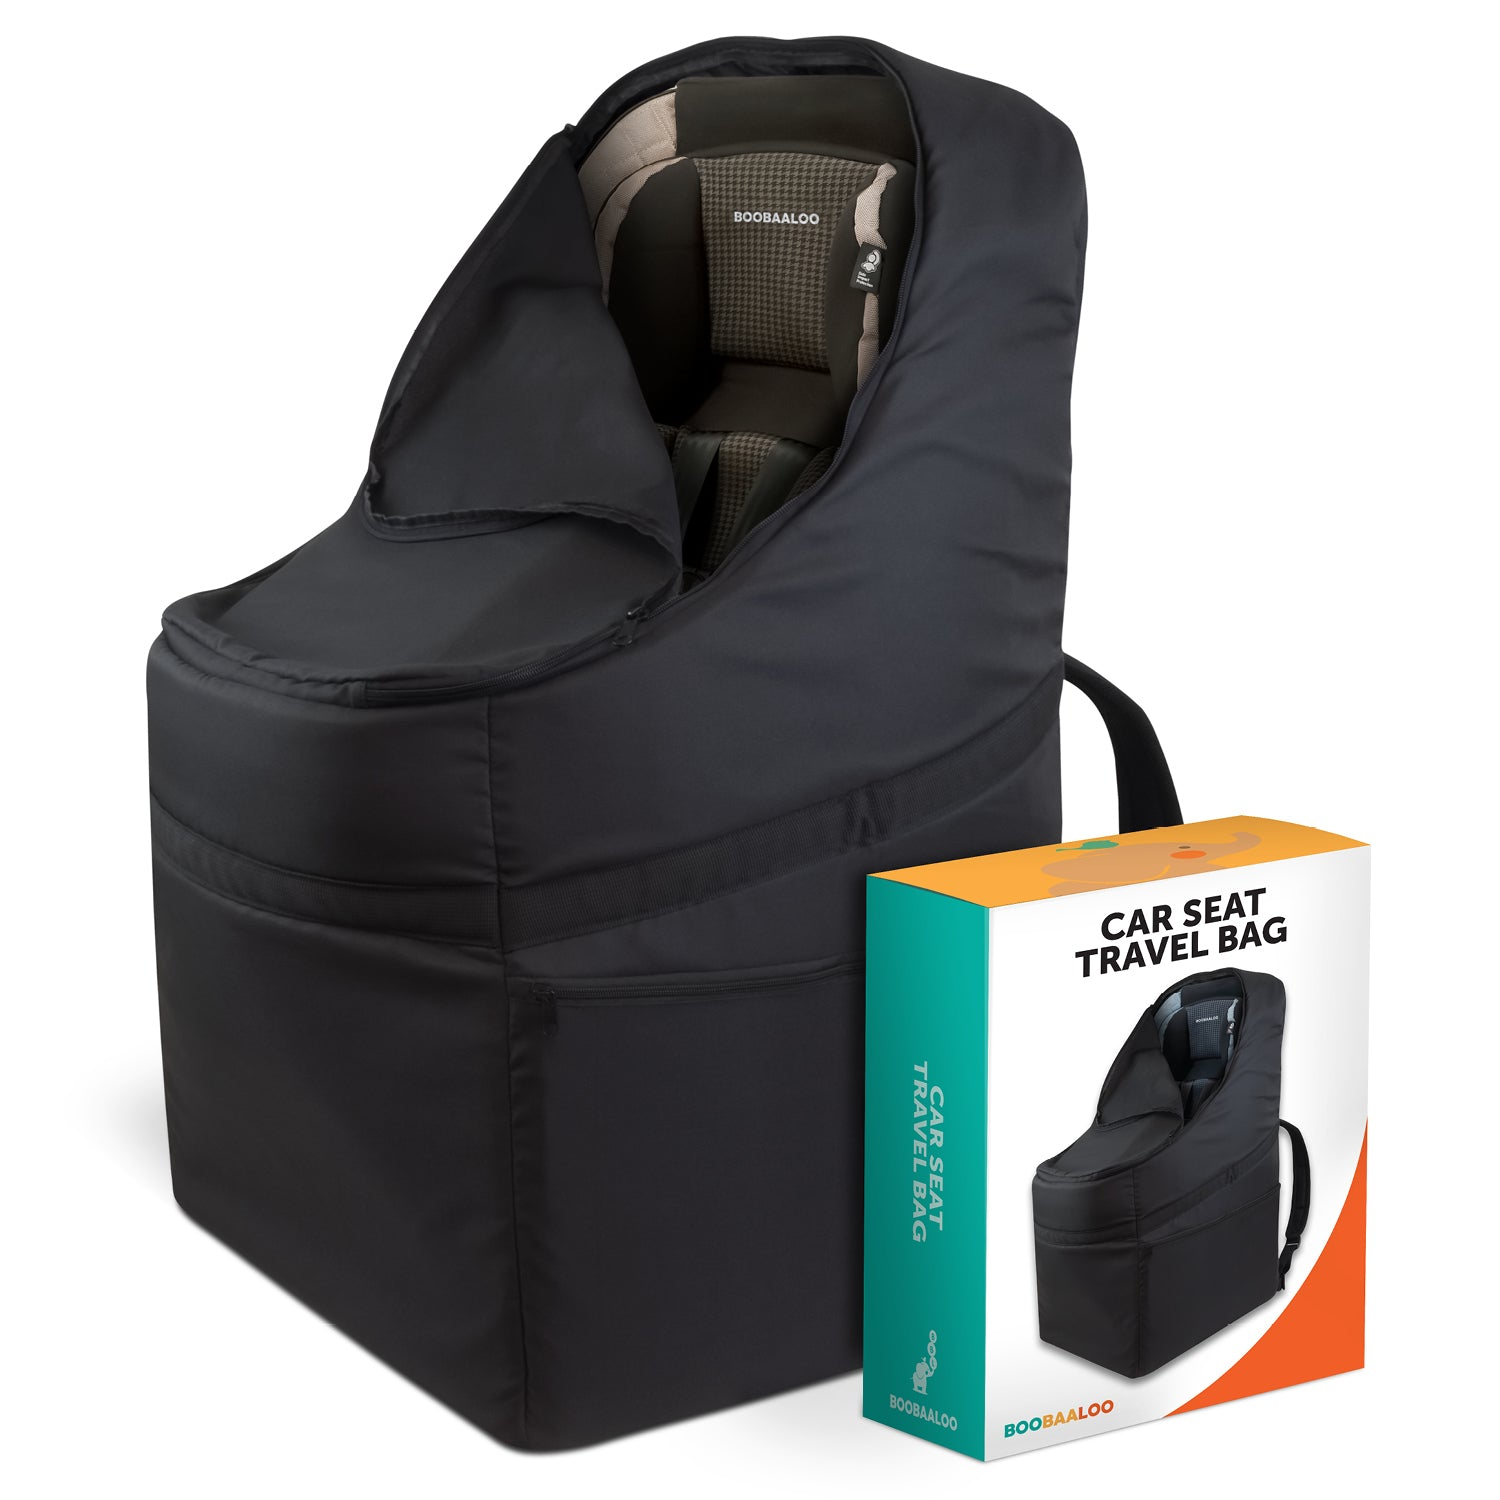 Car Seat Travel Bag Durable Waterproof Material With Heavy Duty Padding Chest Waist Straps